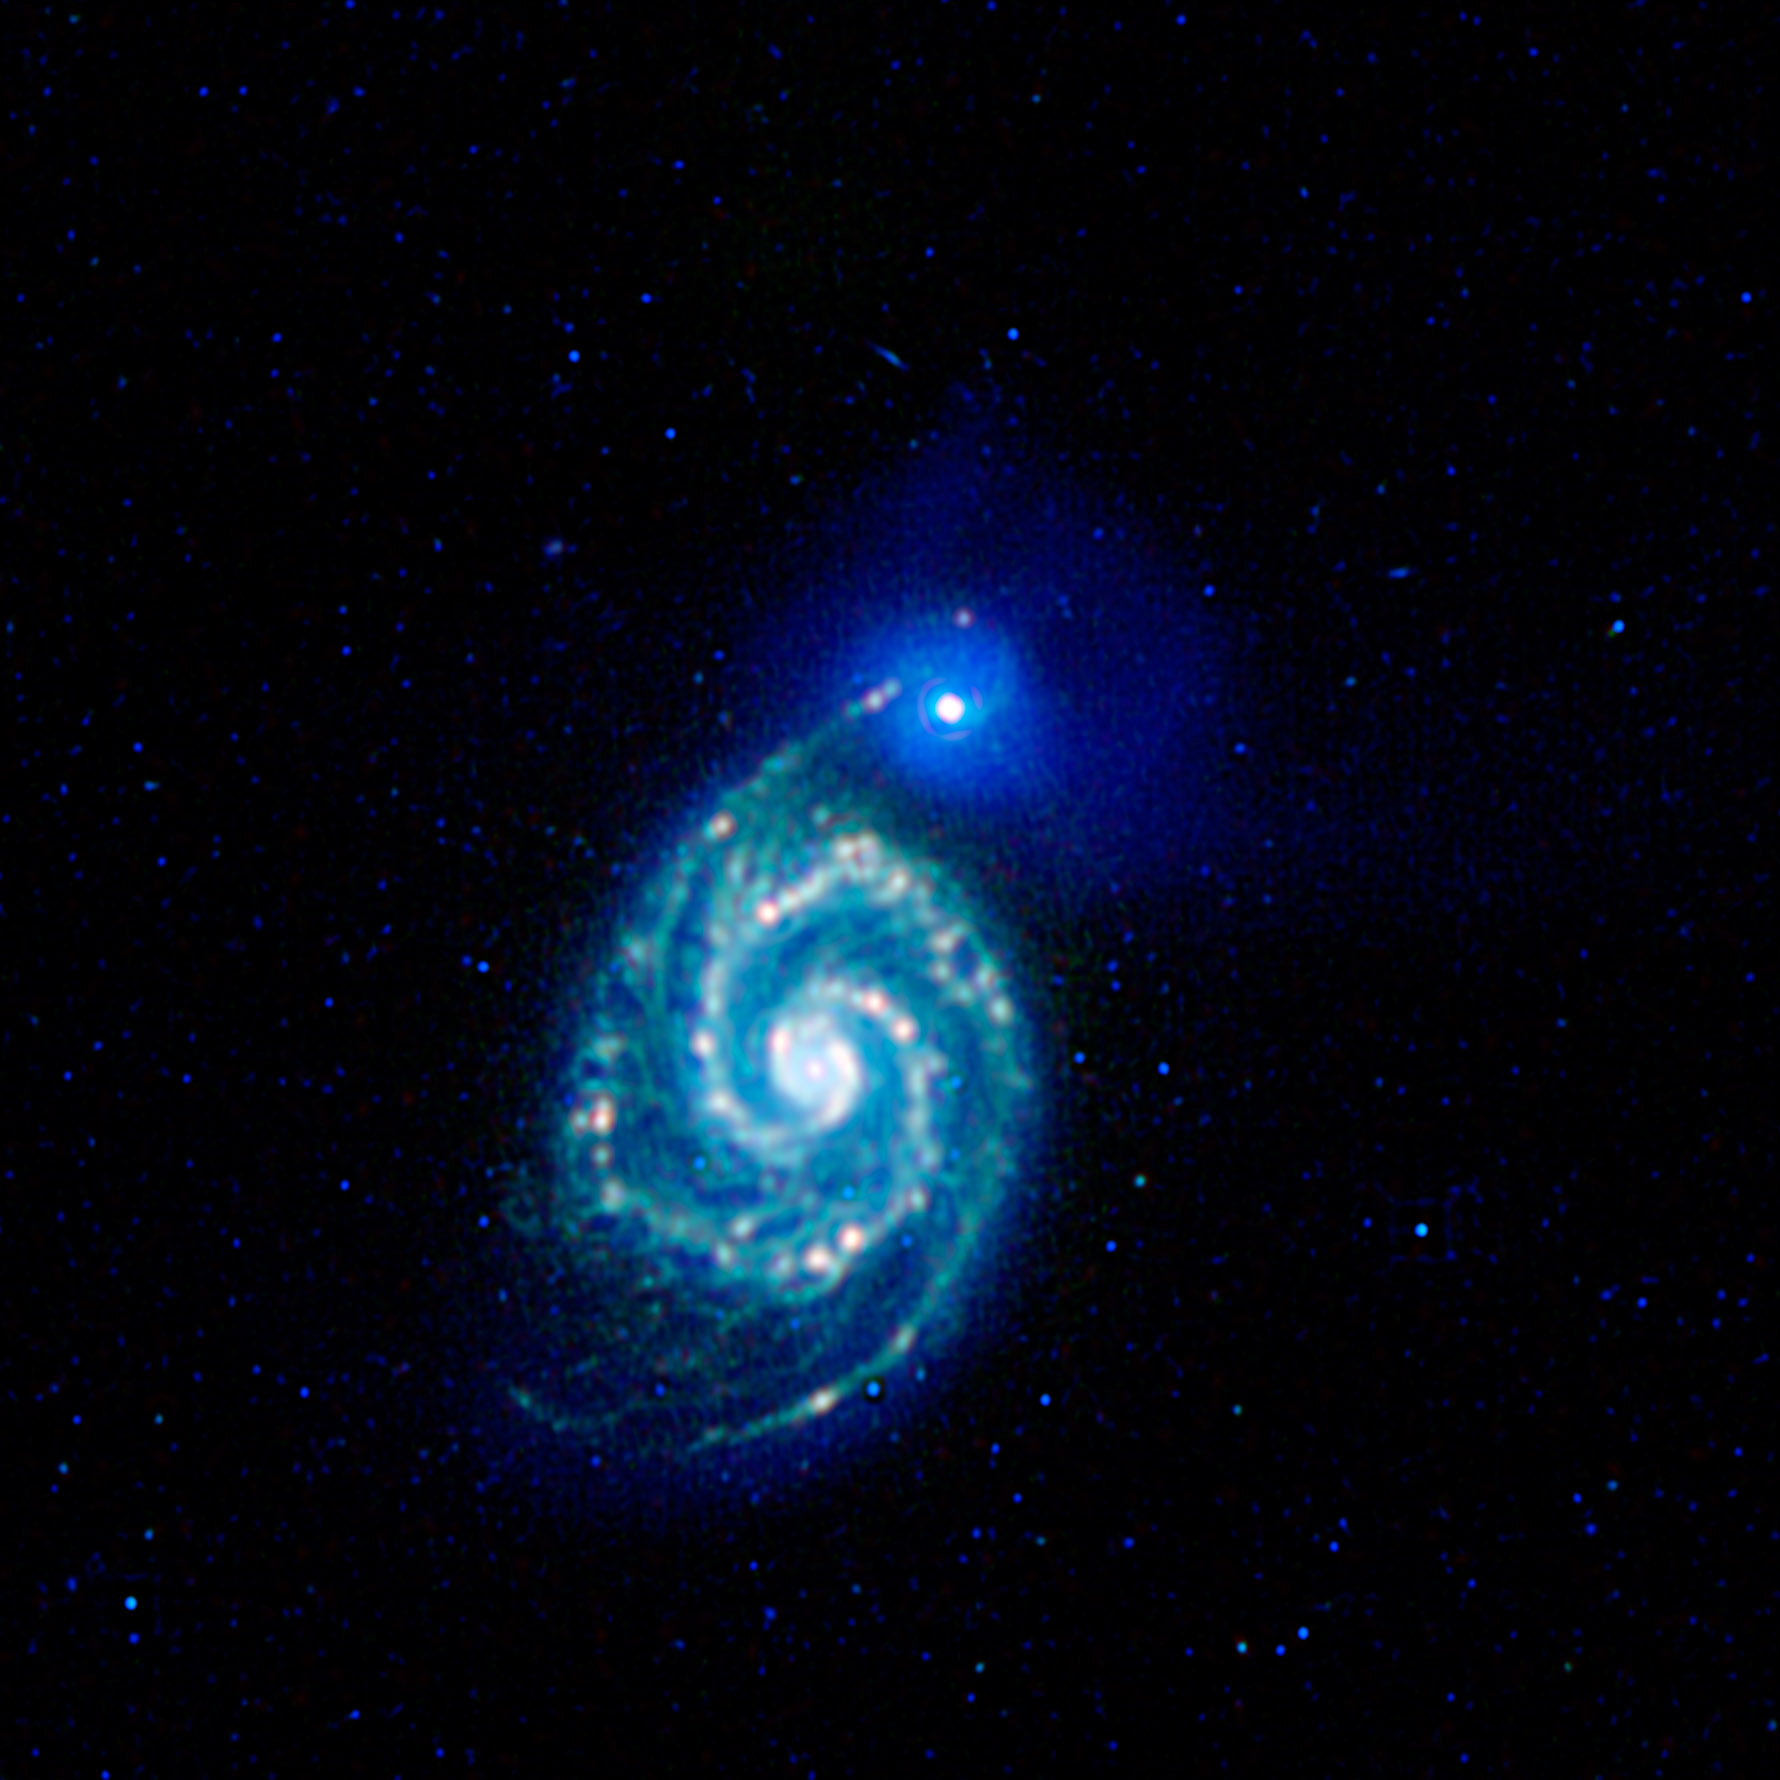 The Whirlpool Galaxy, or Messier 51 (M51)